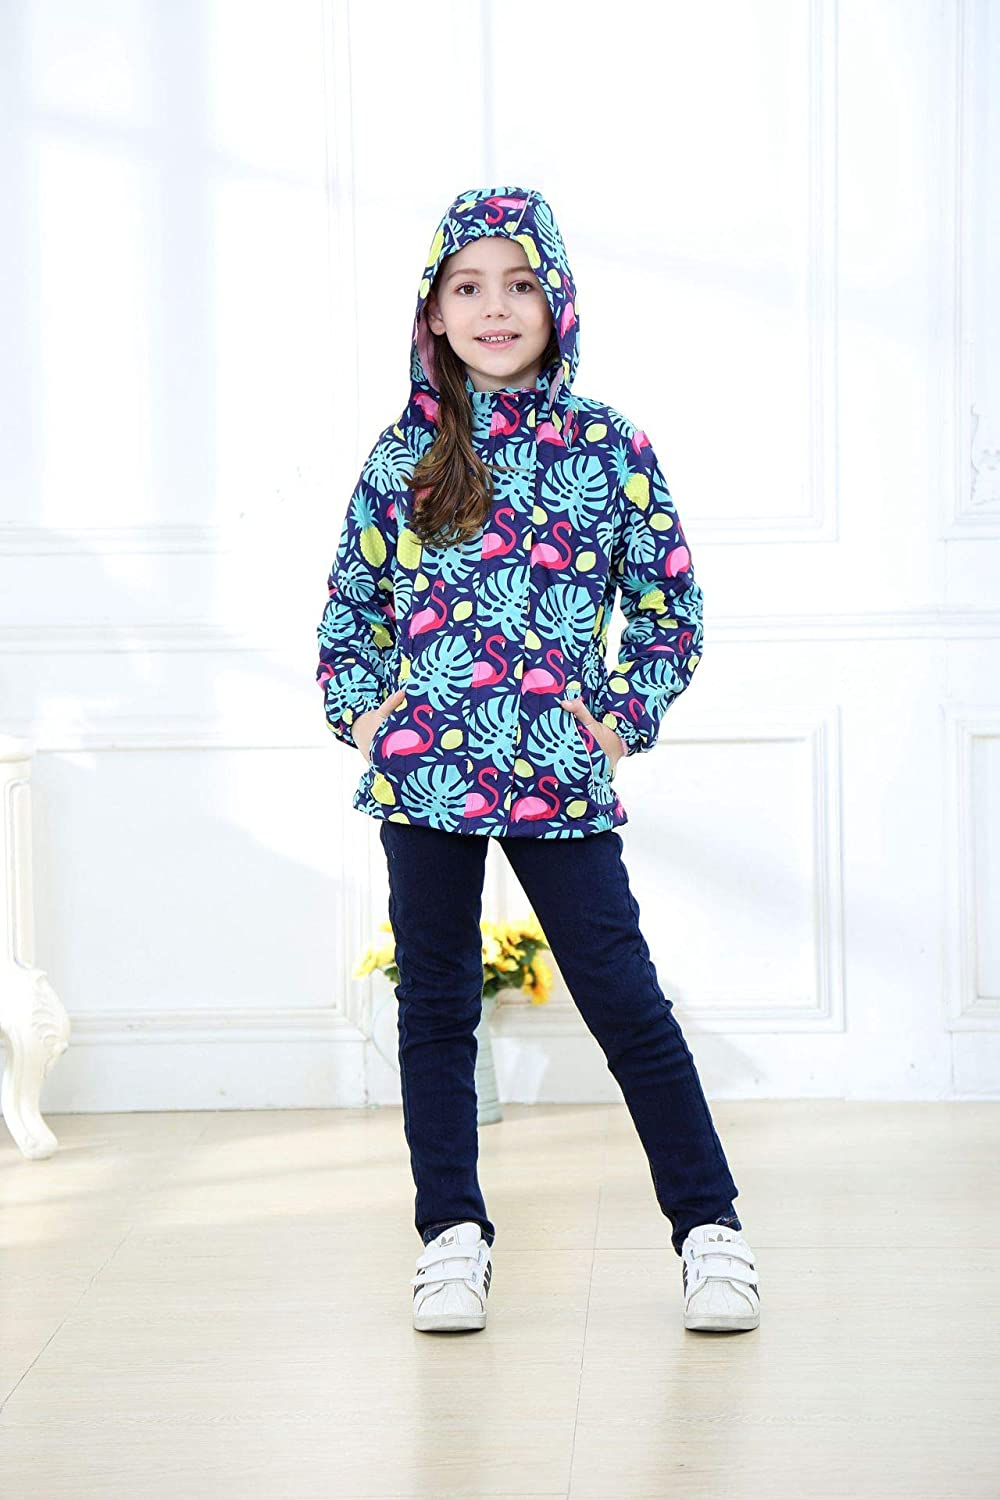 Happy childhood Kids Girls Waterproof Windbreaker Jacket Spring Autumn Outdoor Coat Lightweight Rain Jacket Wet Weather /& Travelling